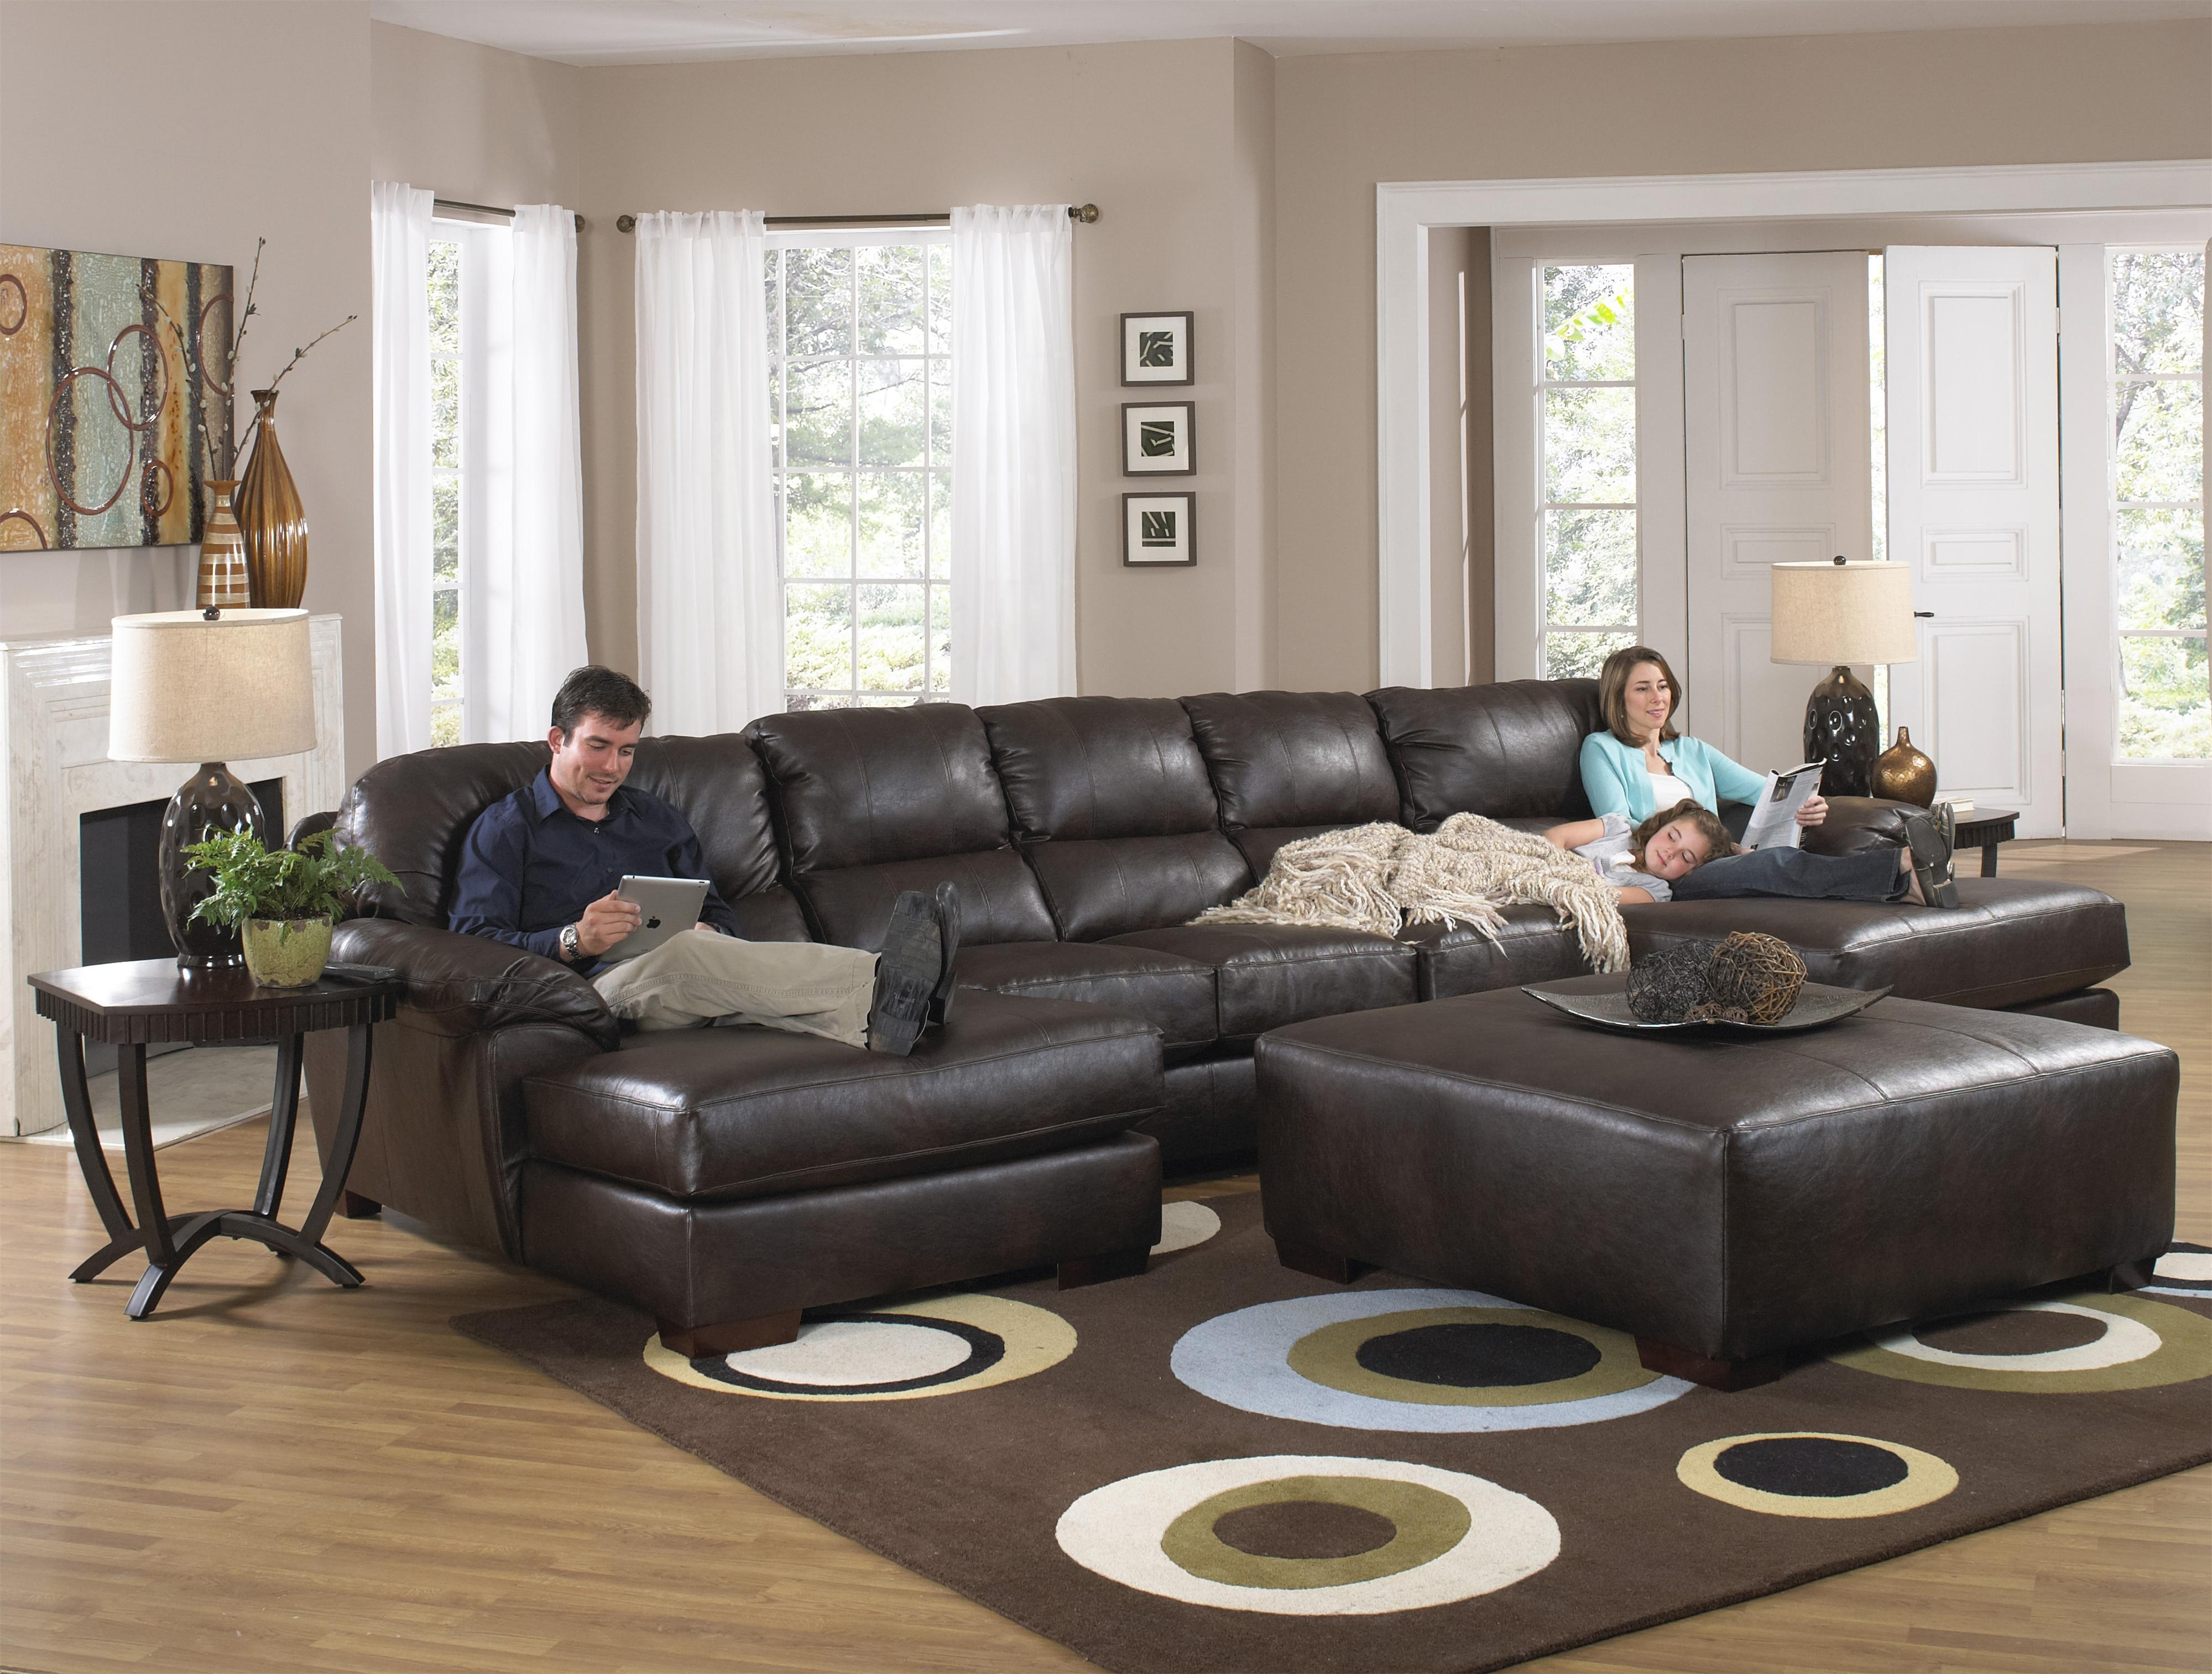 Sectional Sofas With Chaise Lounge And Ottoman In Most Recent Sofa : Beautiful Large Sectional Sofa With Chaise L Shaped Cream (View 6 of 15)